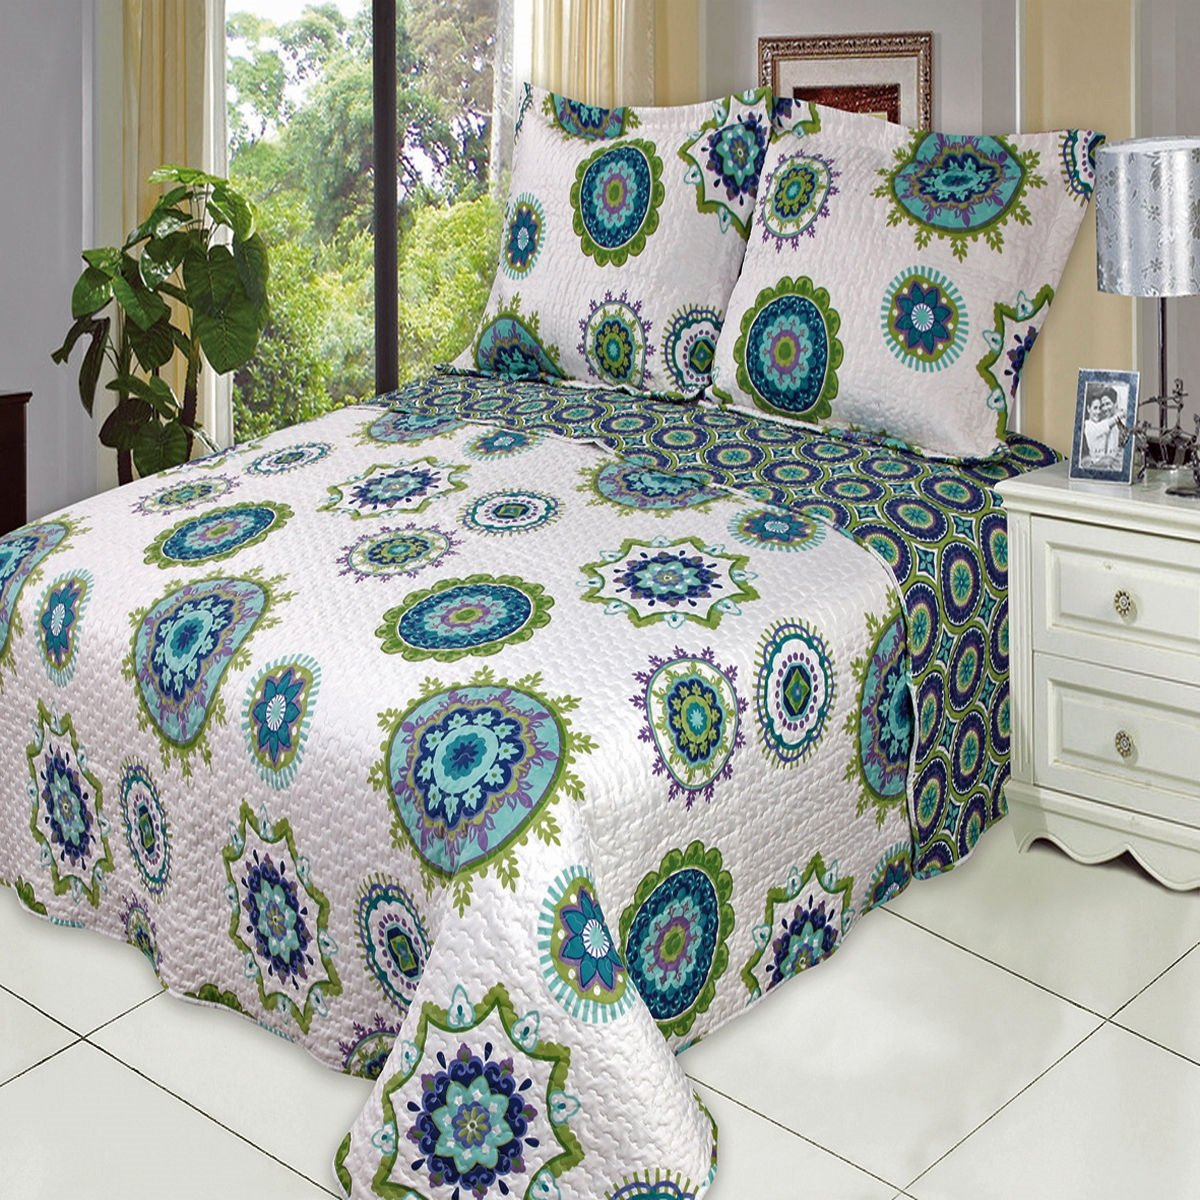 Moon Daughter 3 Pcs Julia Oversize Printed King Calking Coverlet Bedspread Set 100% Microfiber Cover Cool Color